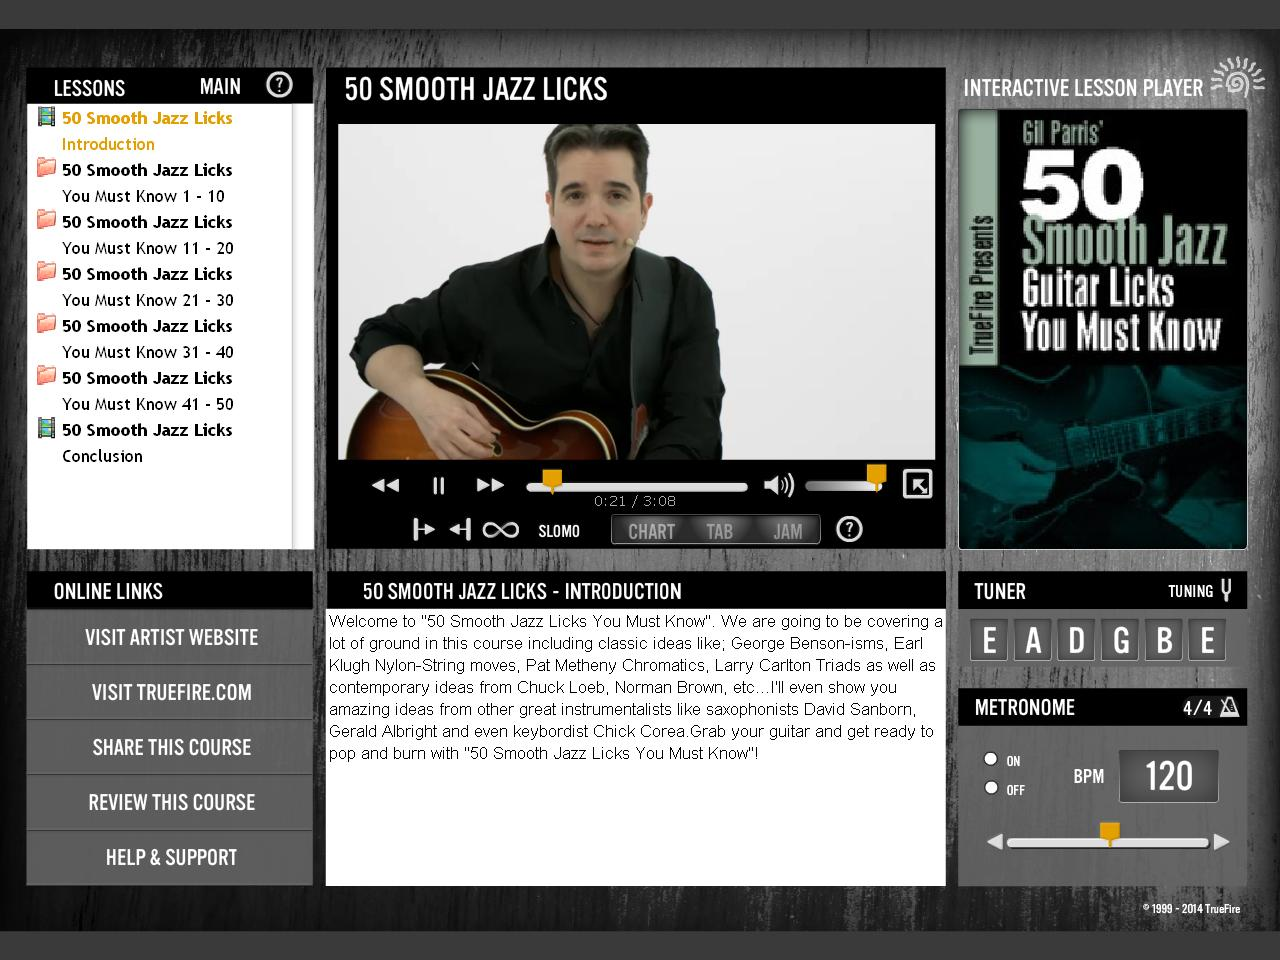 Truefire - Gil Parris' 50 Smooth Jazz Guitar Licks You Must Know (2014)